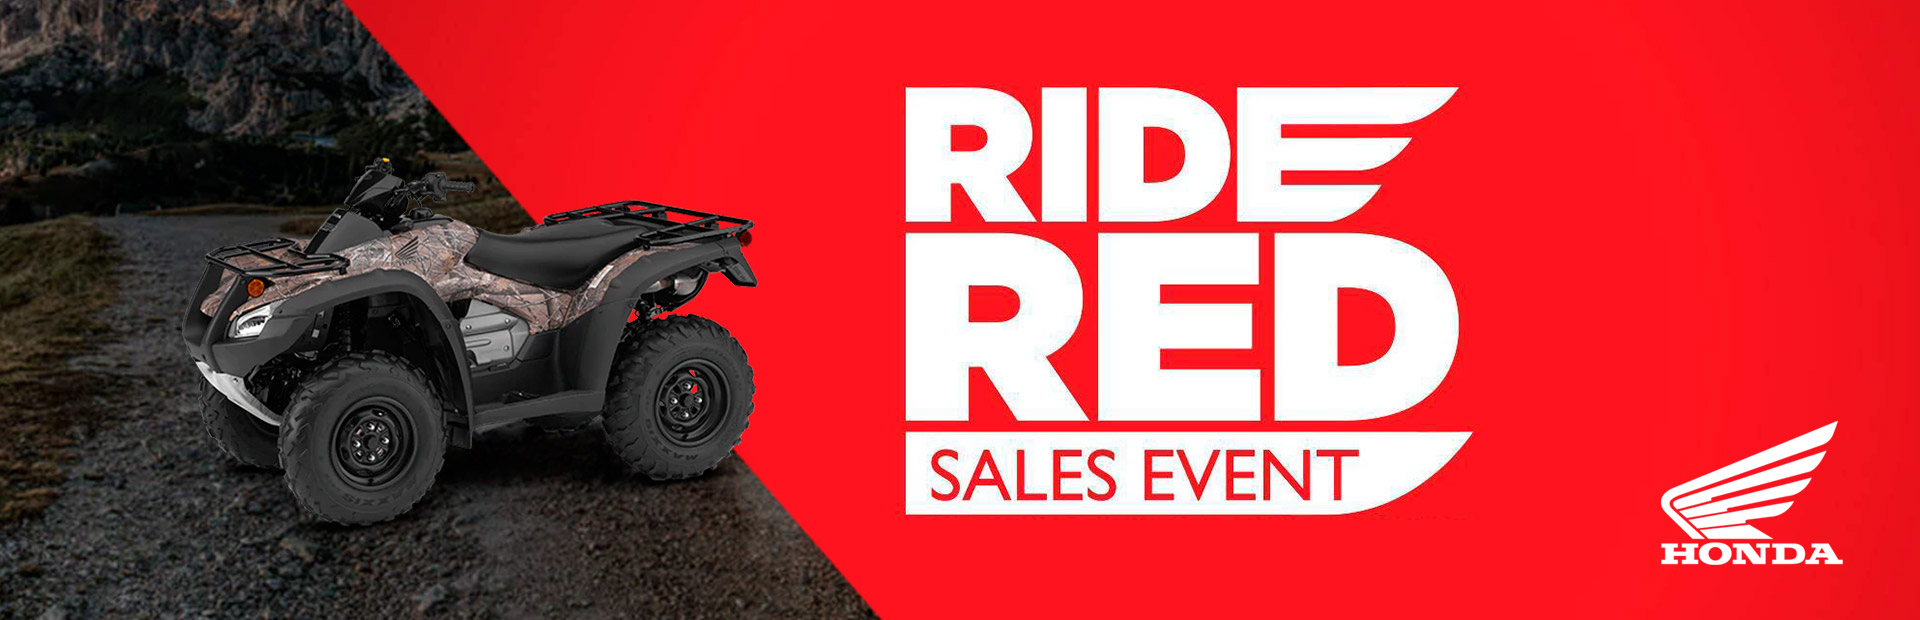 Honda: Ride Red Sales Event - ATV/SXS